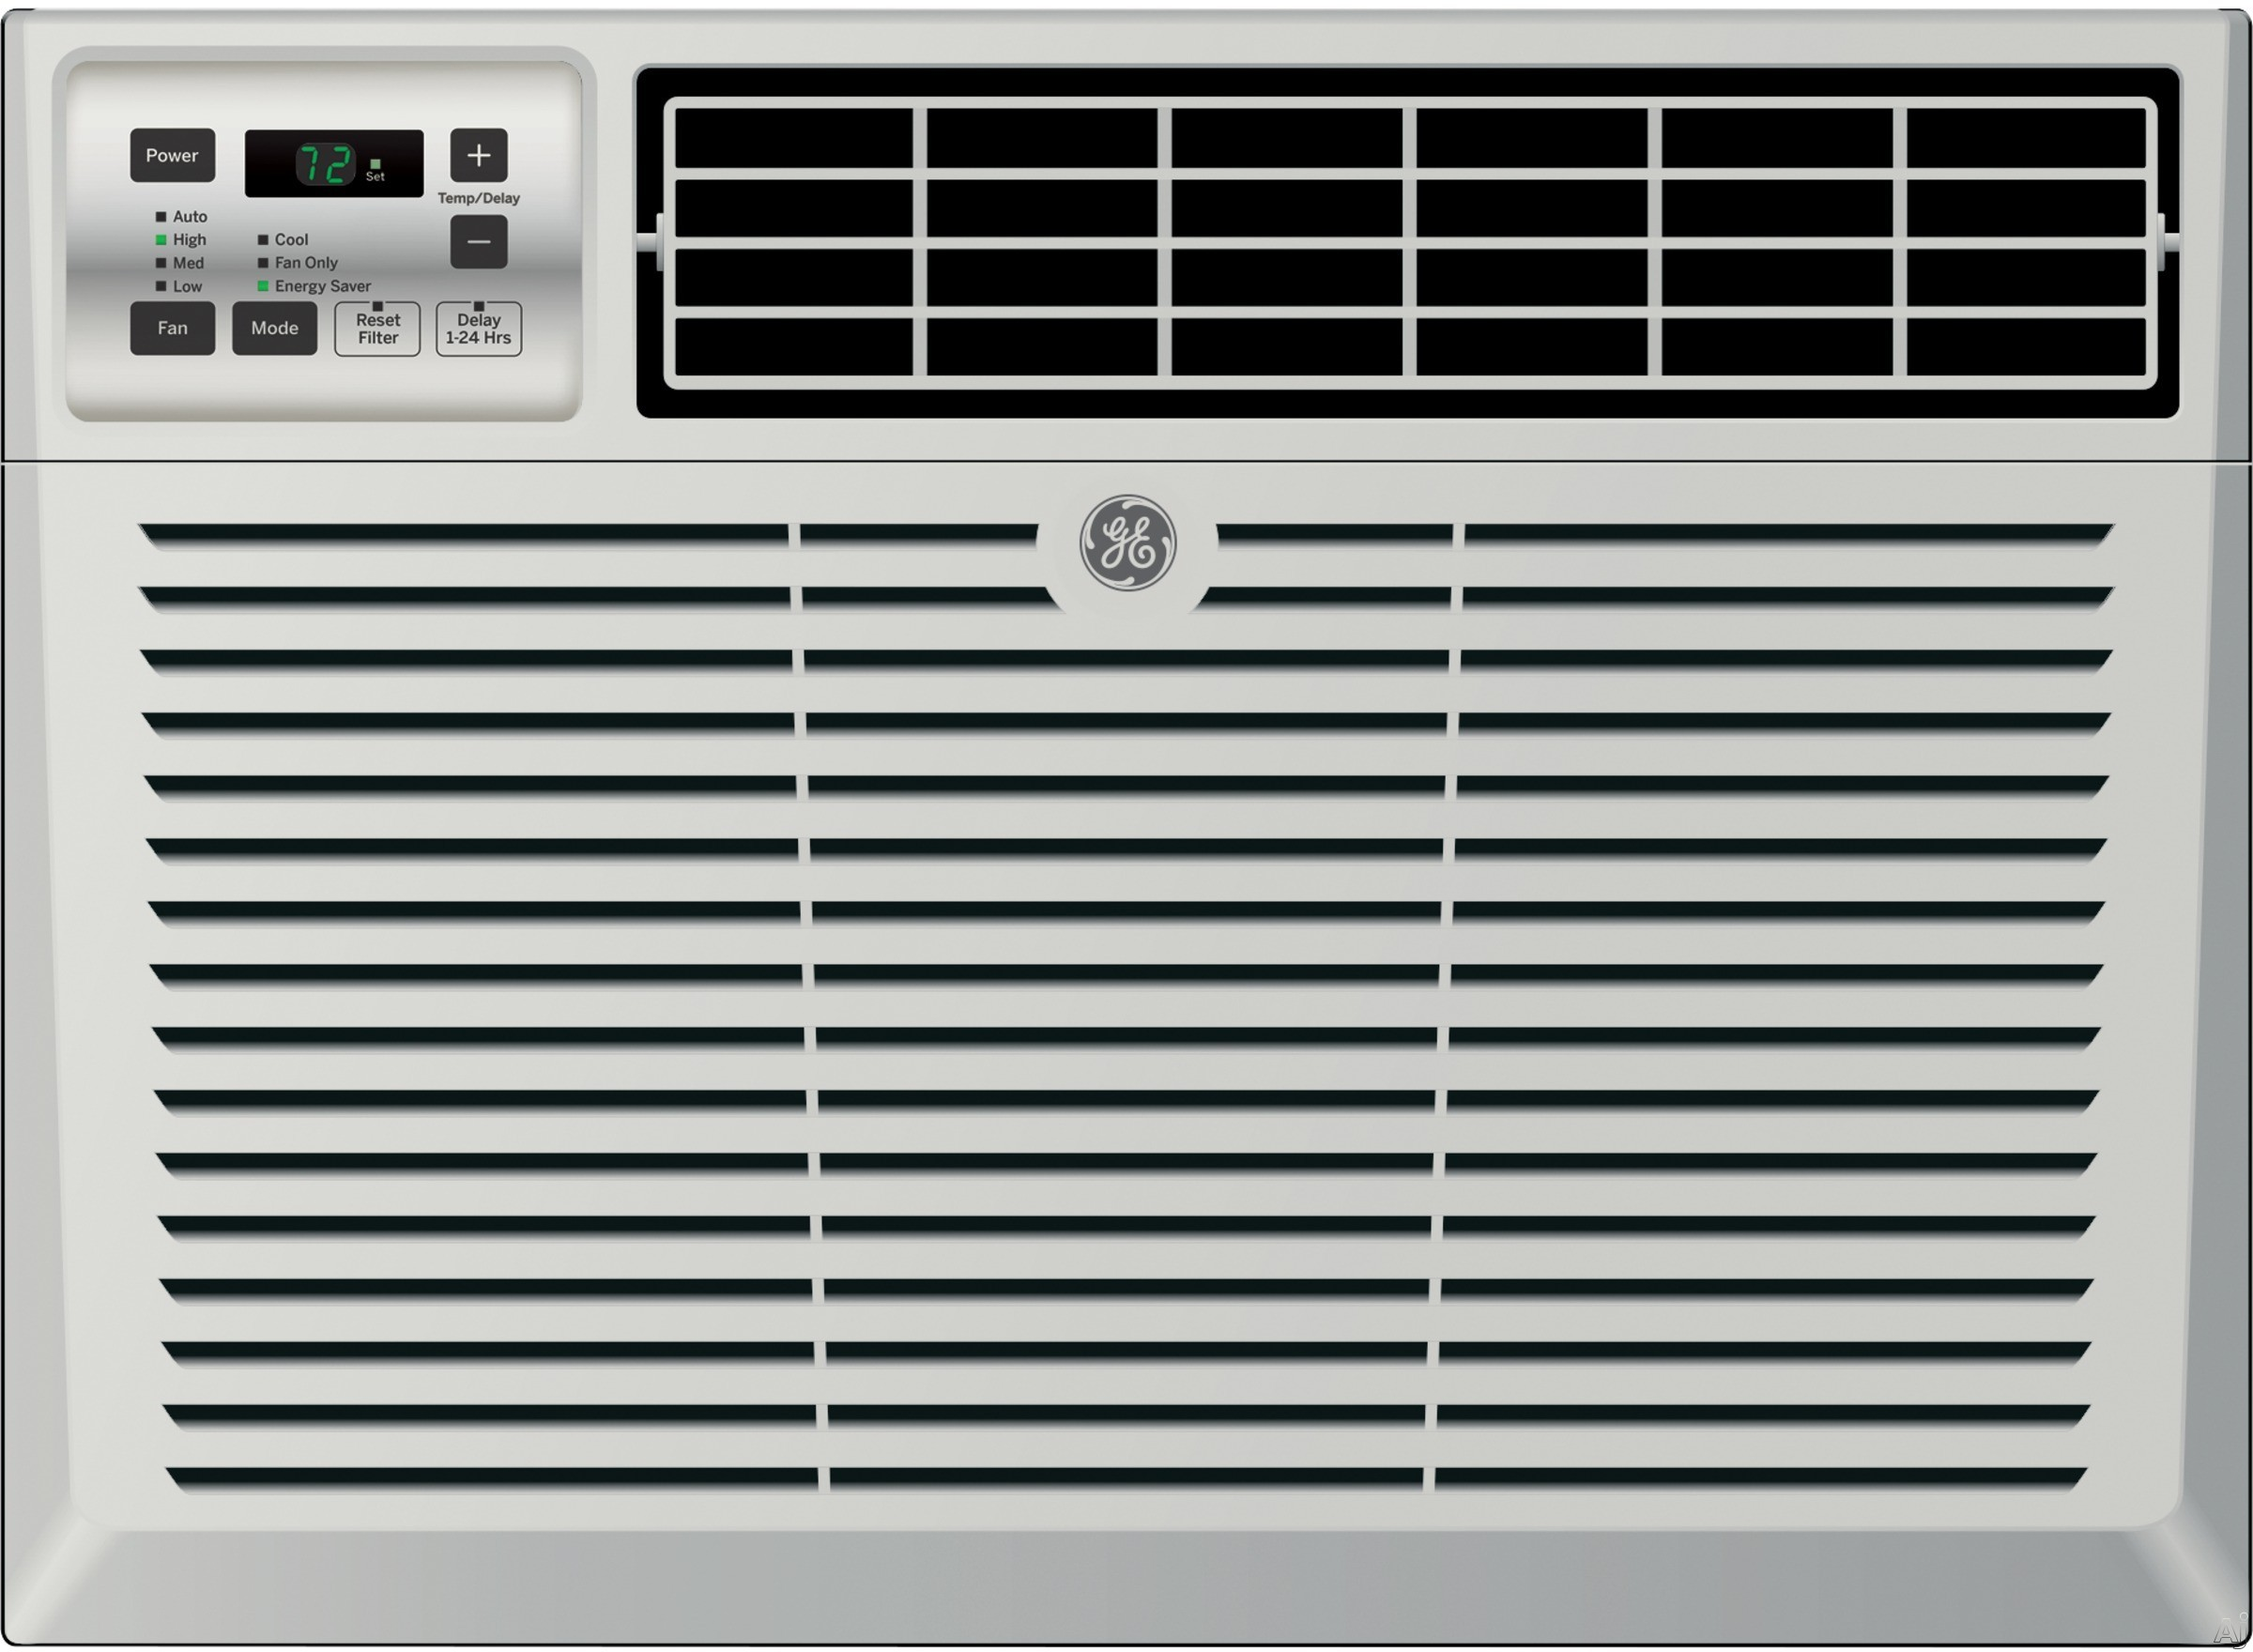 GE AEM05LV 5 200 BTU Room Air Conditioner with 145 CFM 124 EER 14 Pts Hr Dehumidification 3 Fan Speeds EZ Mount Window Kit and ENERGY STAR Rated